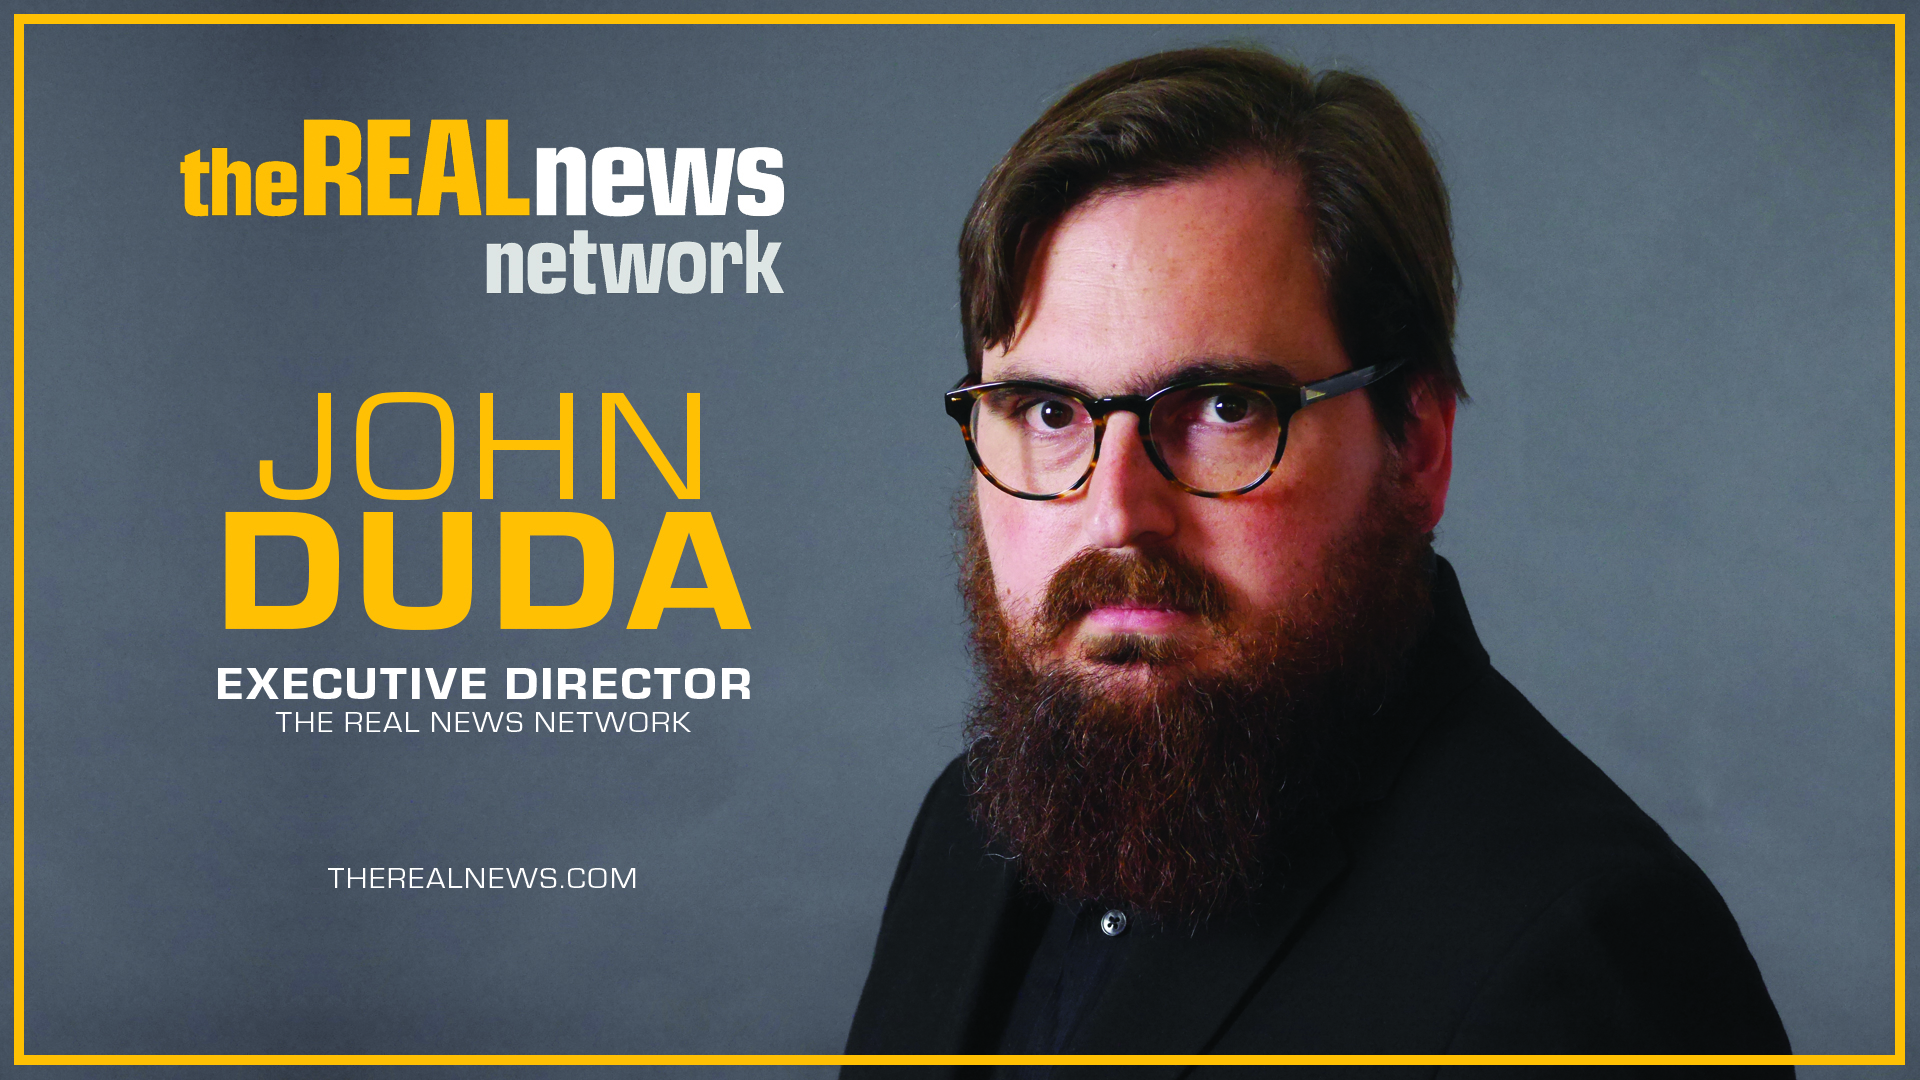 The Real News Network Announces The Appointment Of John Duda As Executive Director